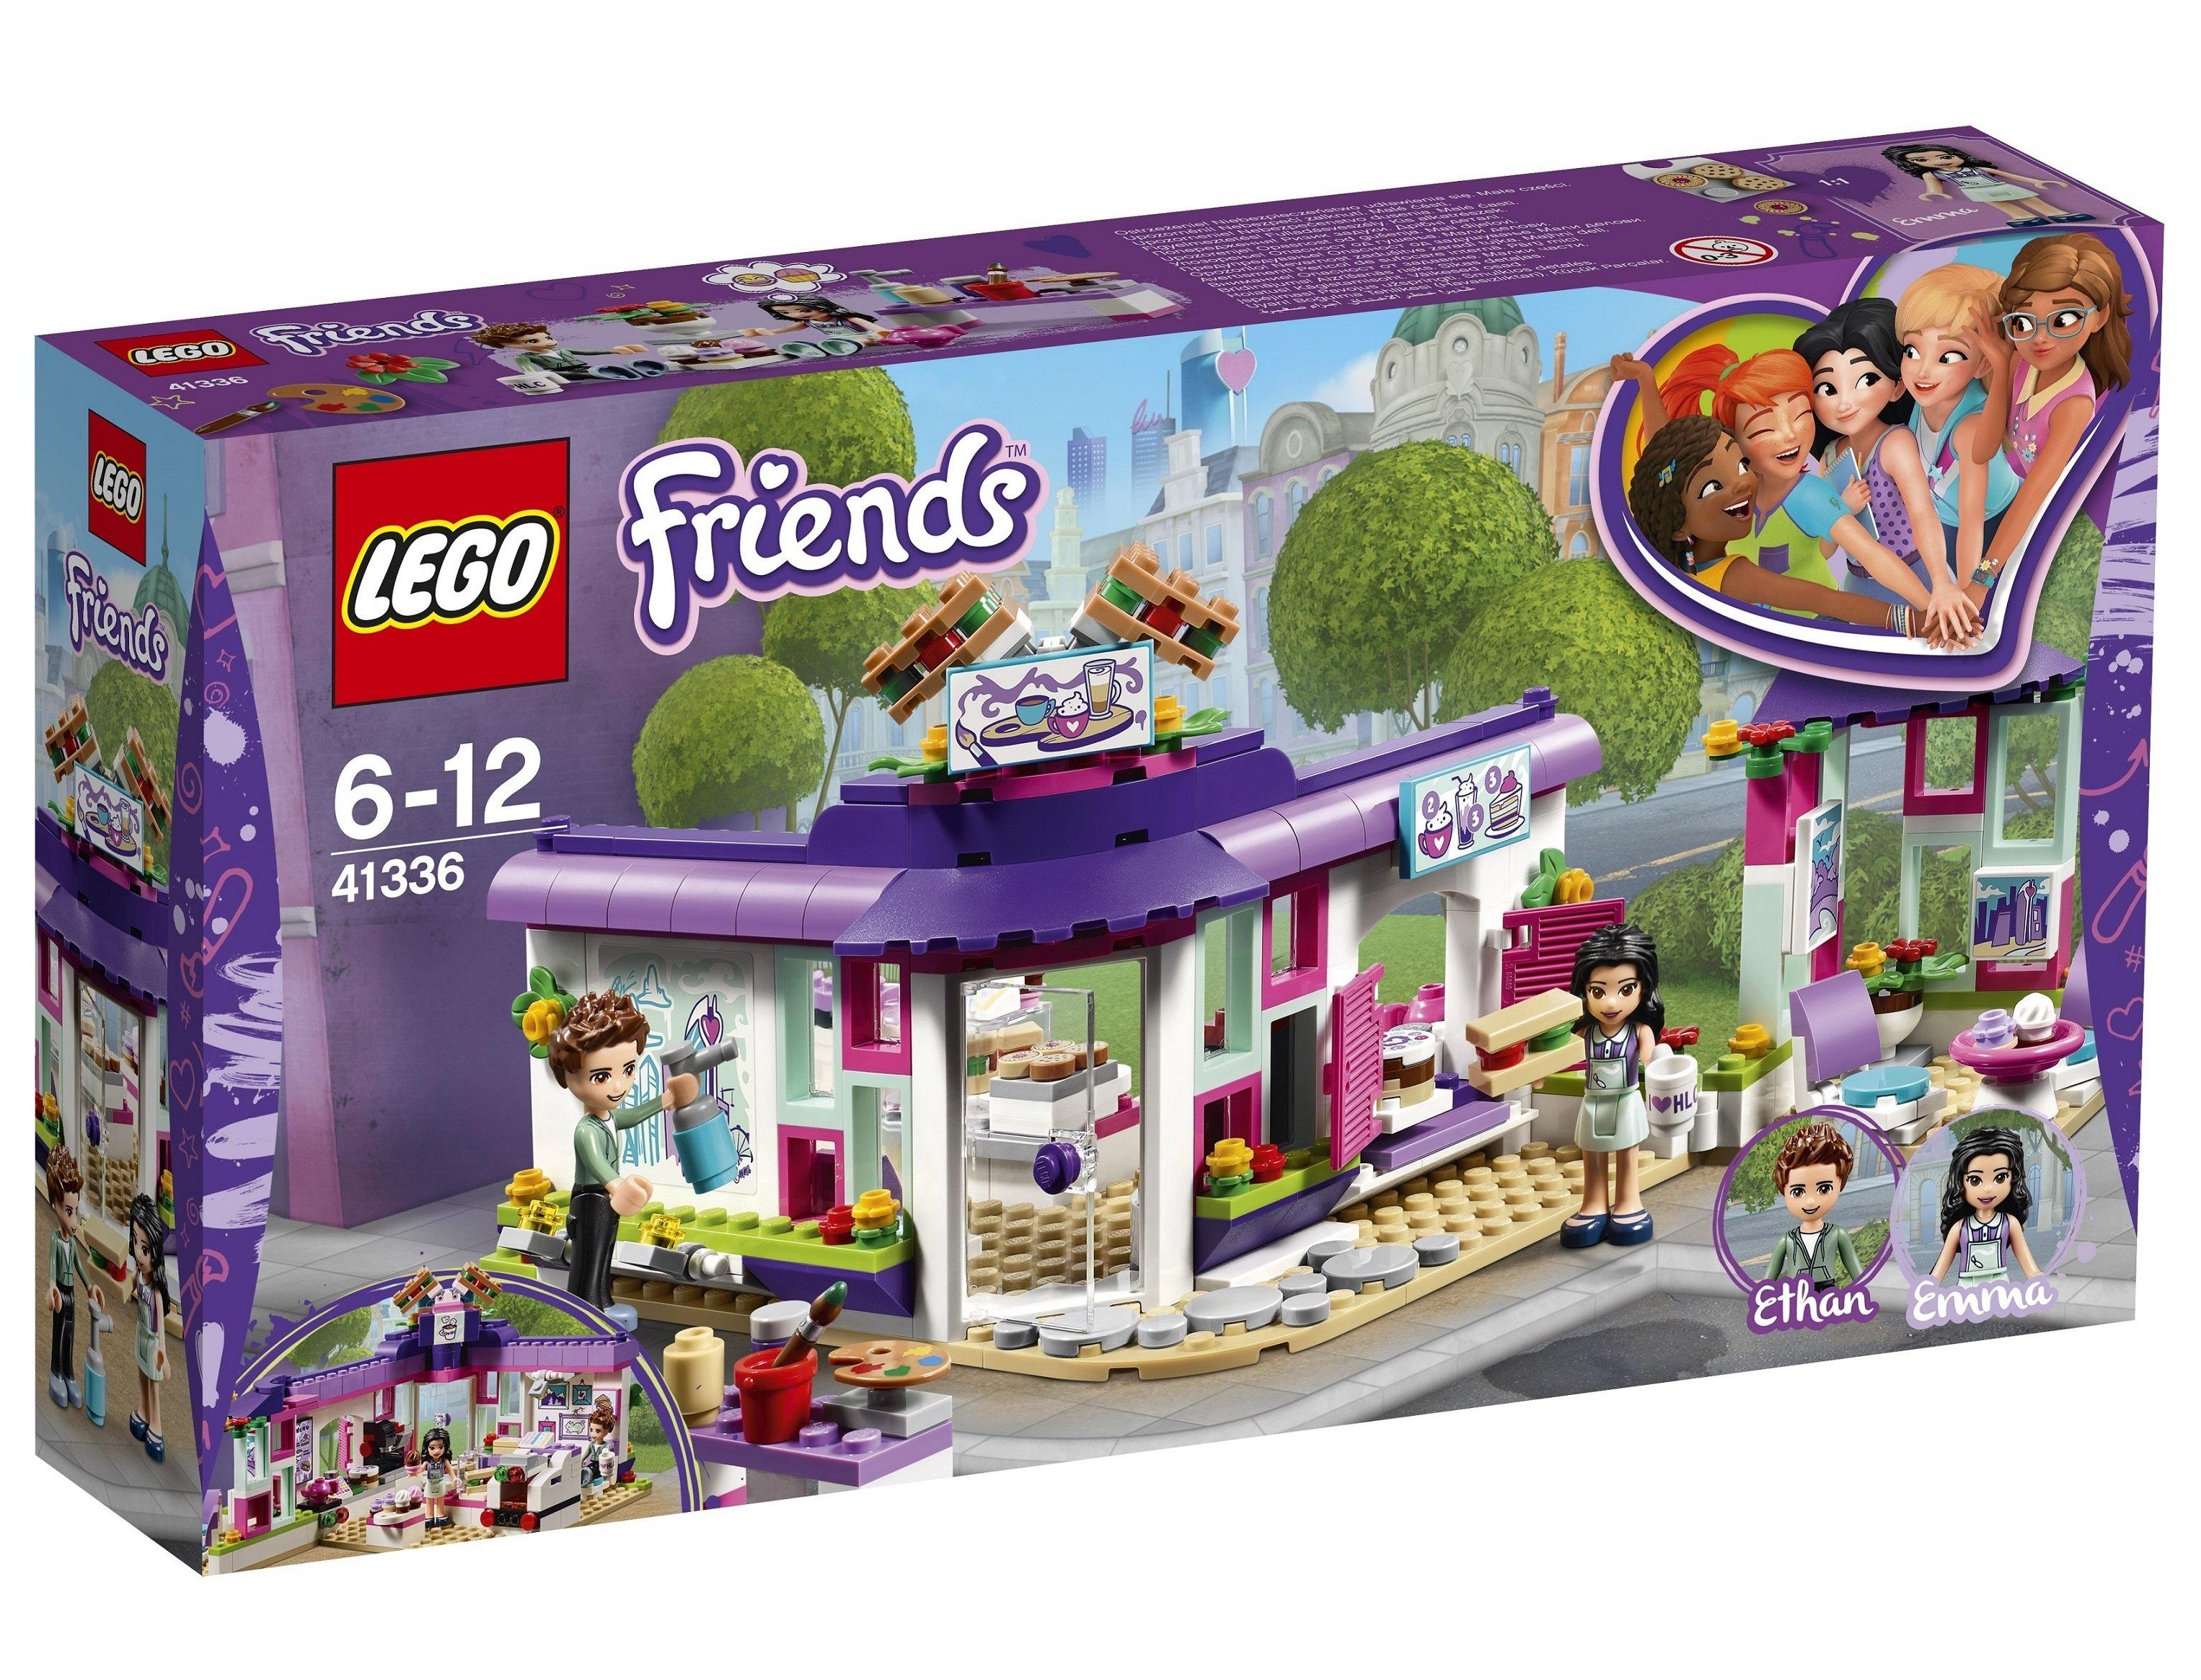 Lego Friends Emmas Art Cafe (41336)